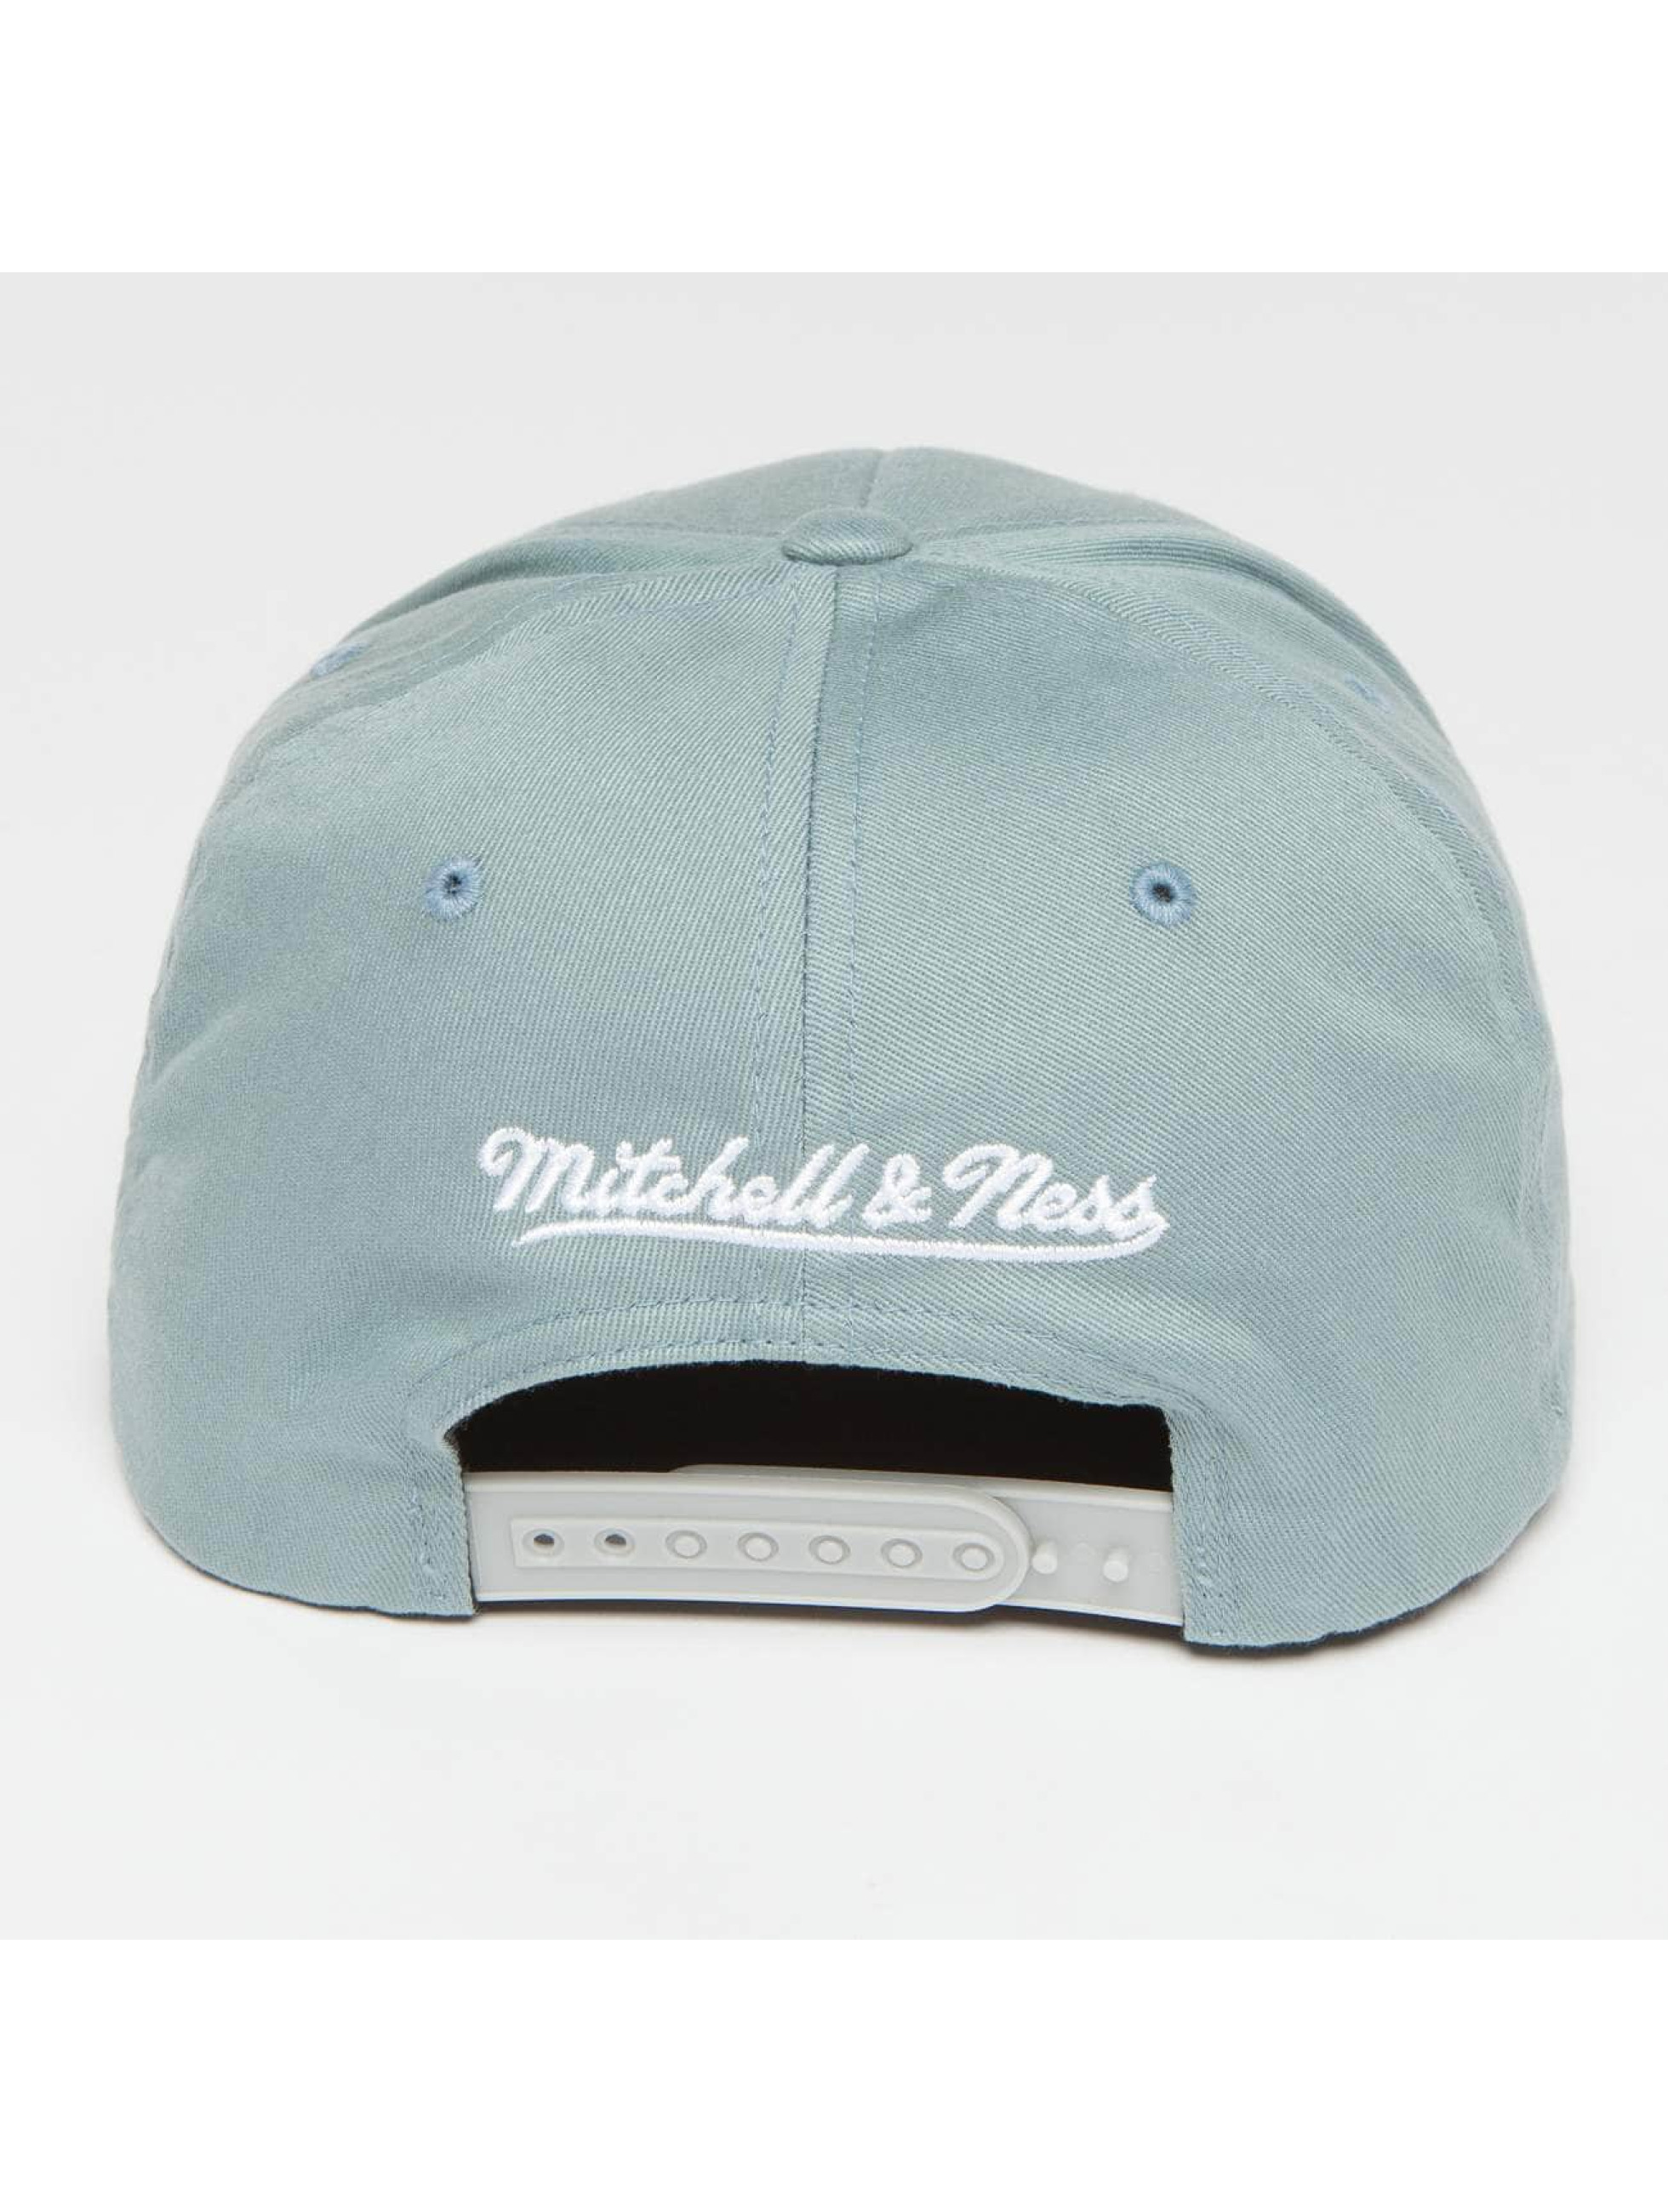 Mitchell & Ness Snapback Caps Own Brand Pinscript High Crown 110 niebieski